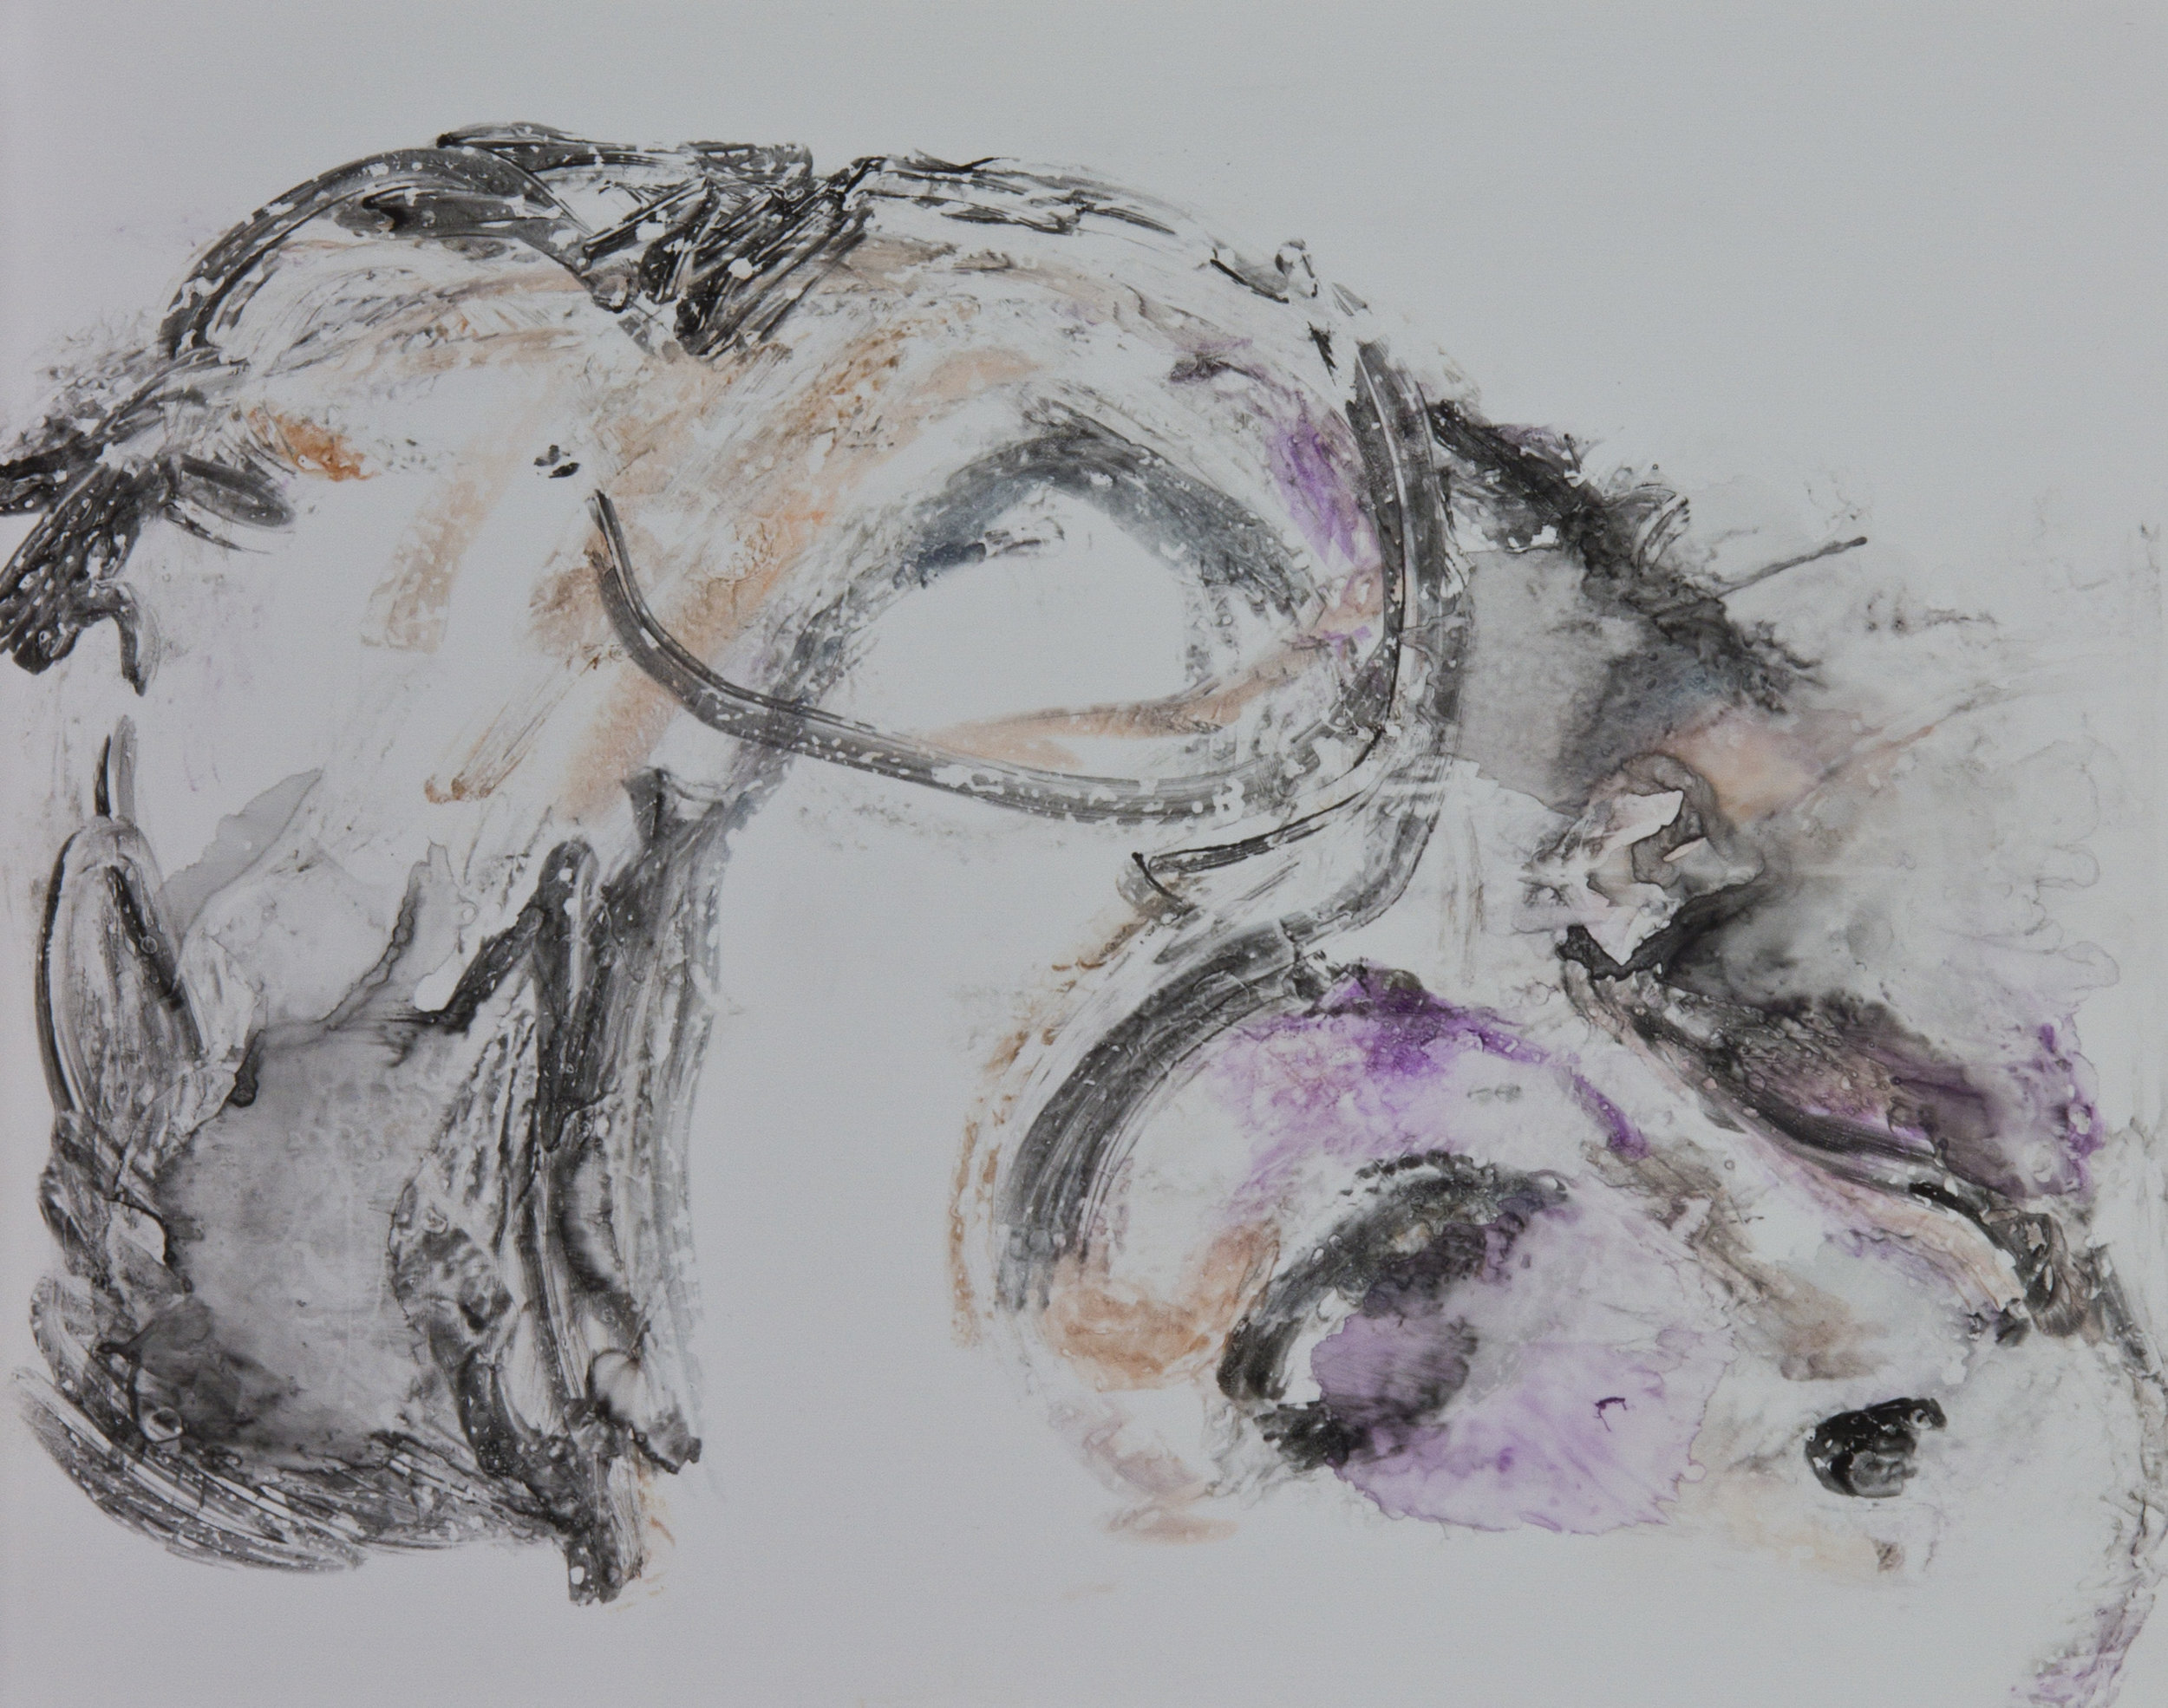 Acts 12, 2010, watercolor monotype on polypropylene, 11x14 inches